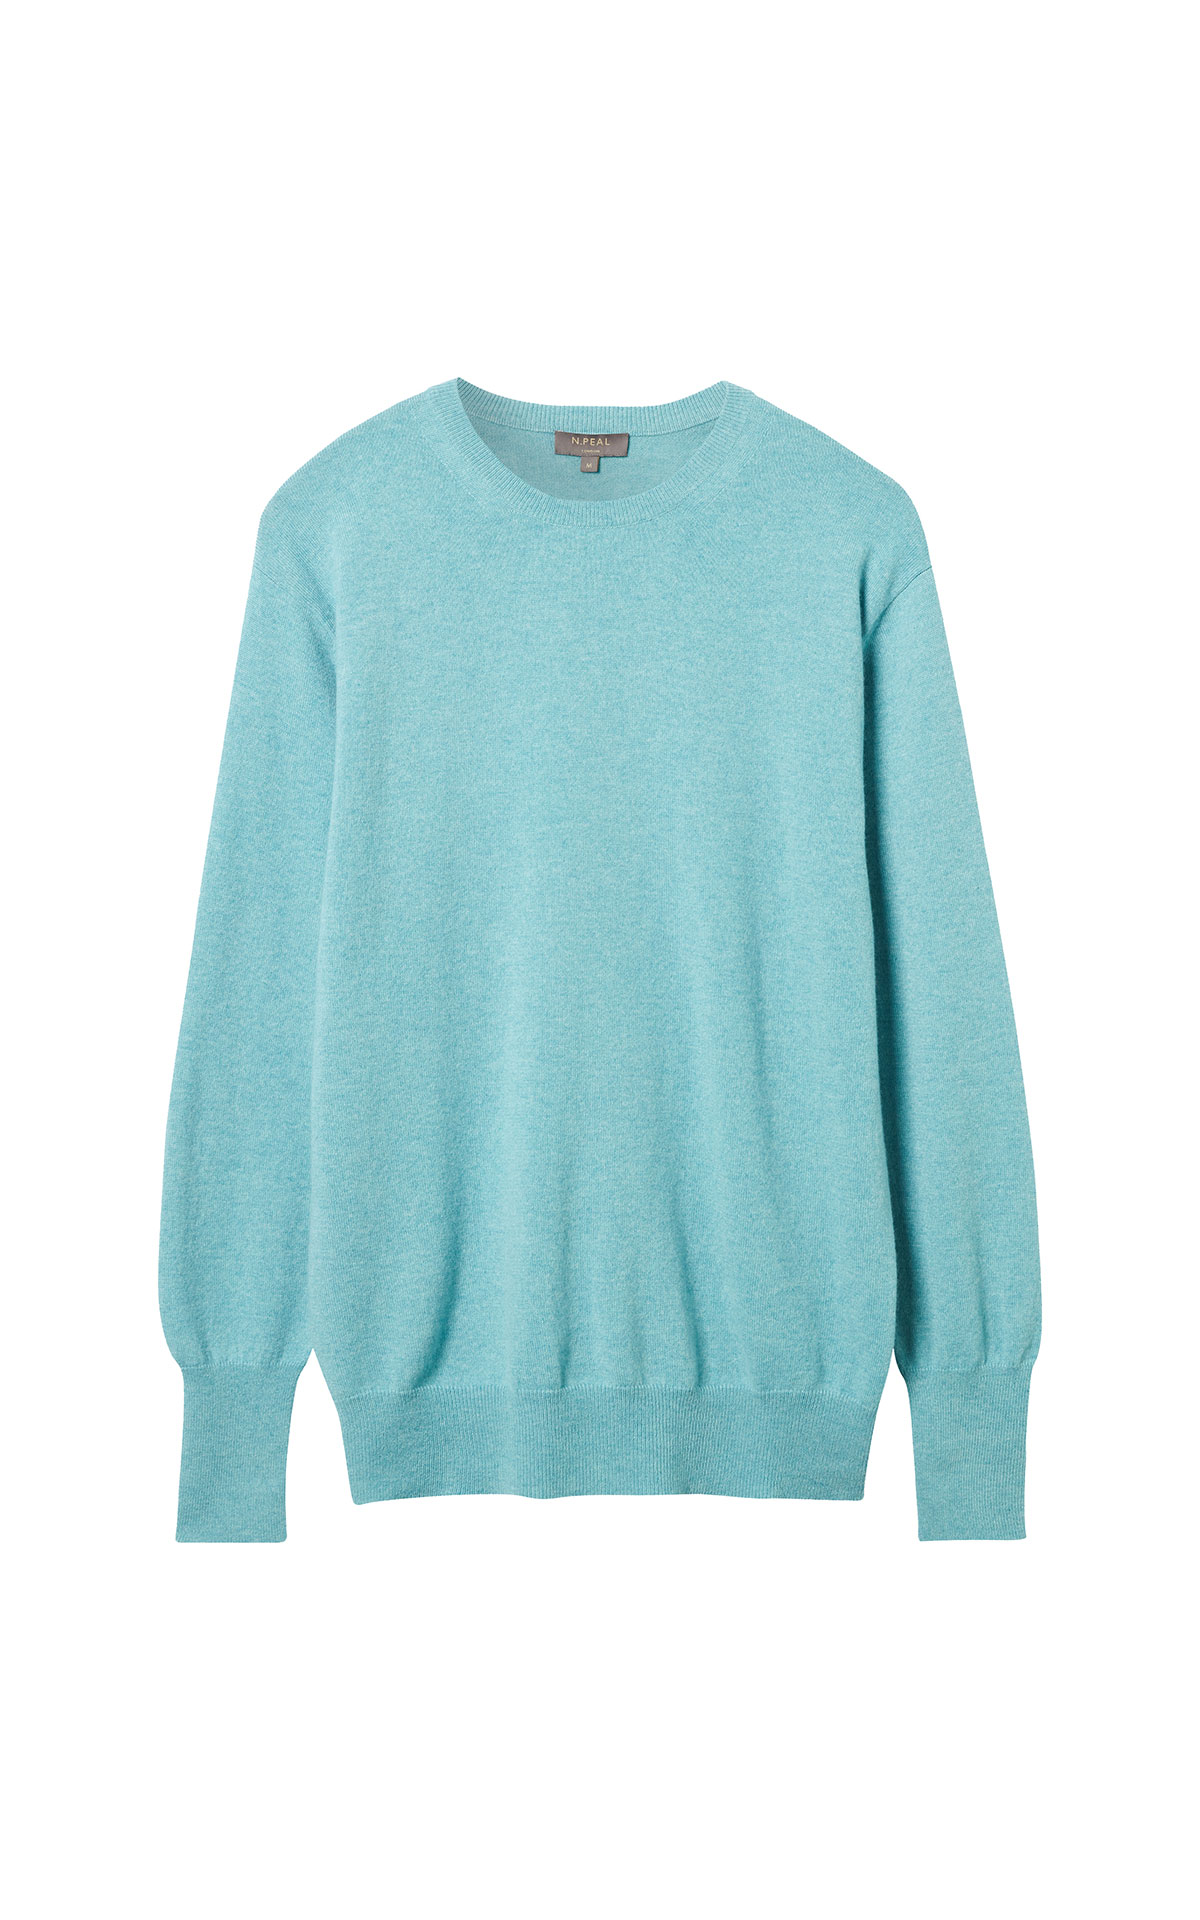 N.Peal Round neck sweater aqua from Bicester Village